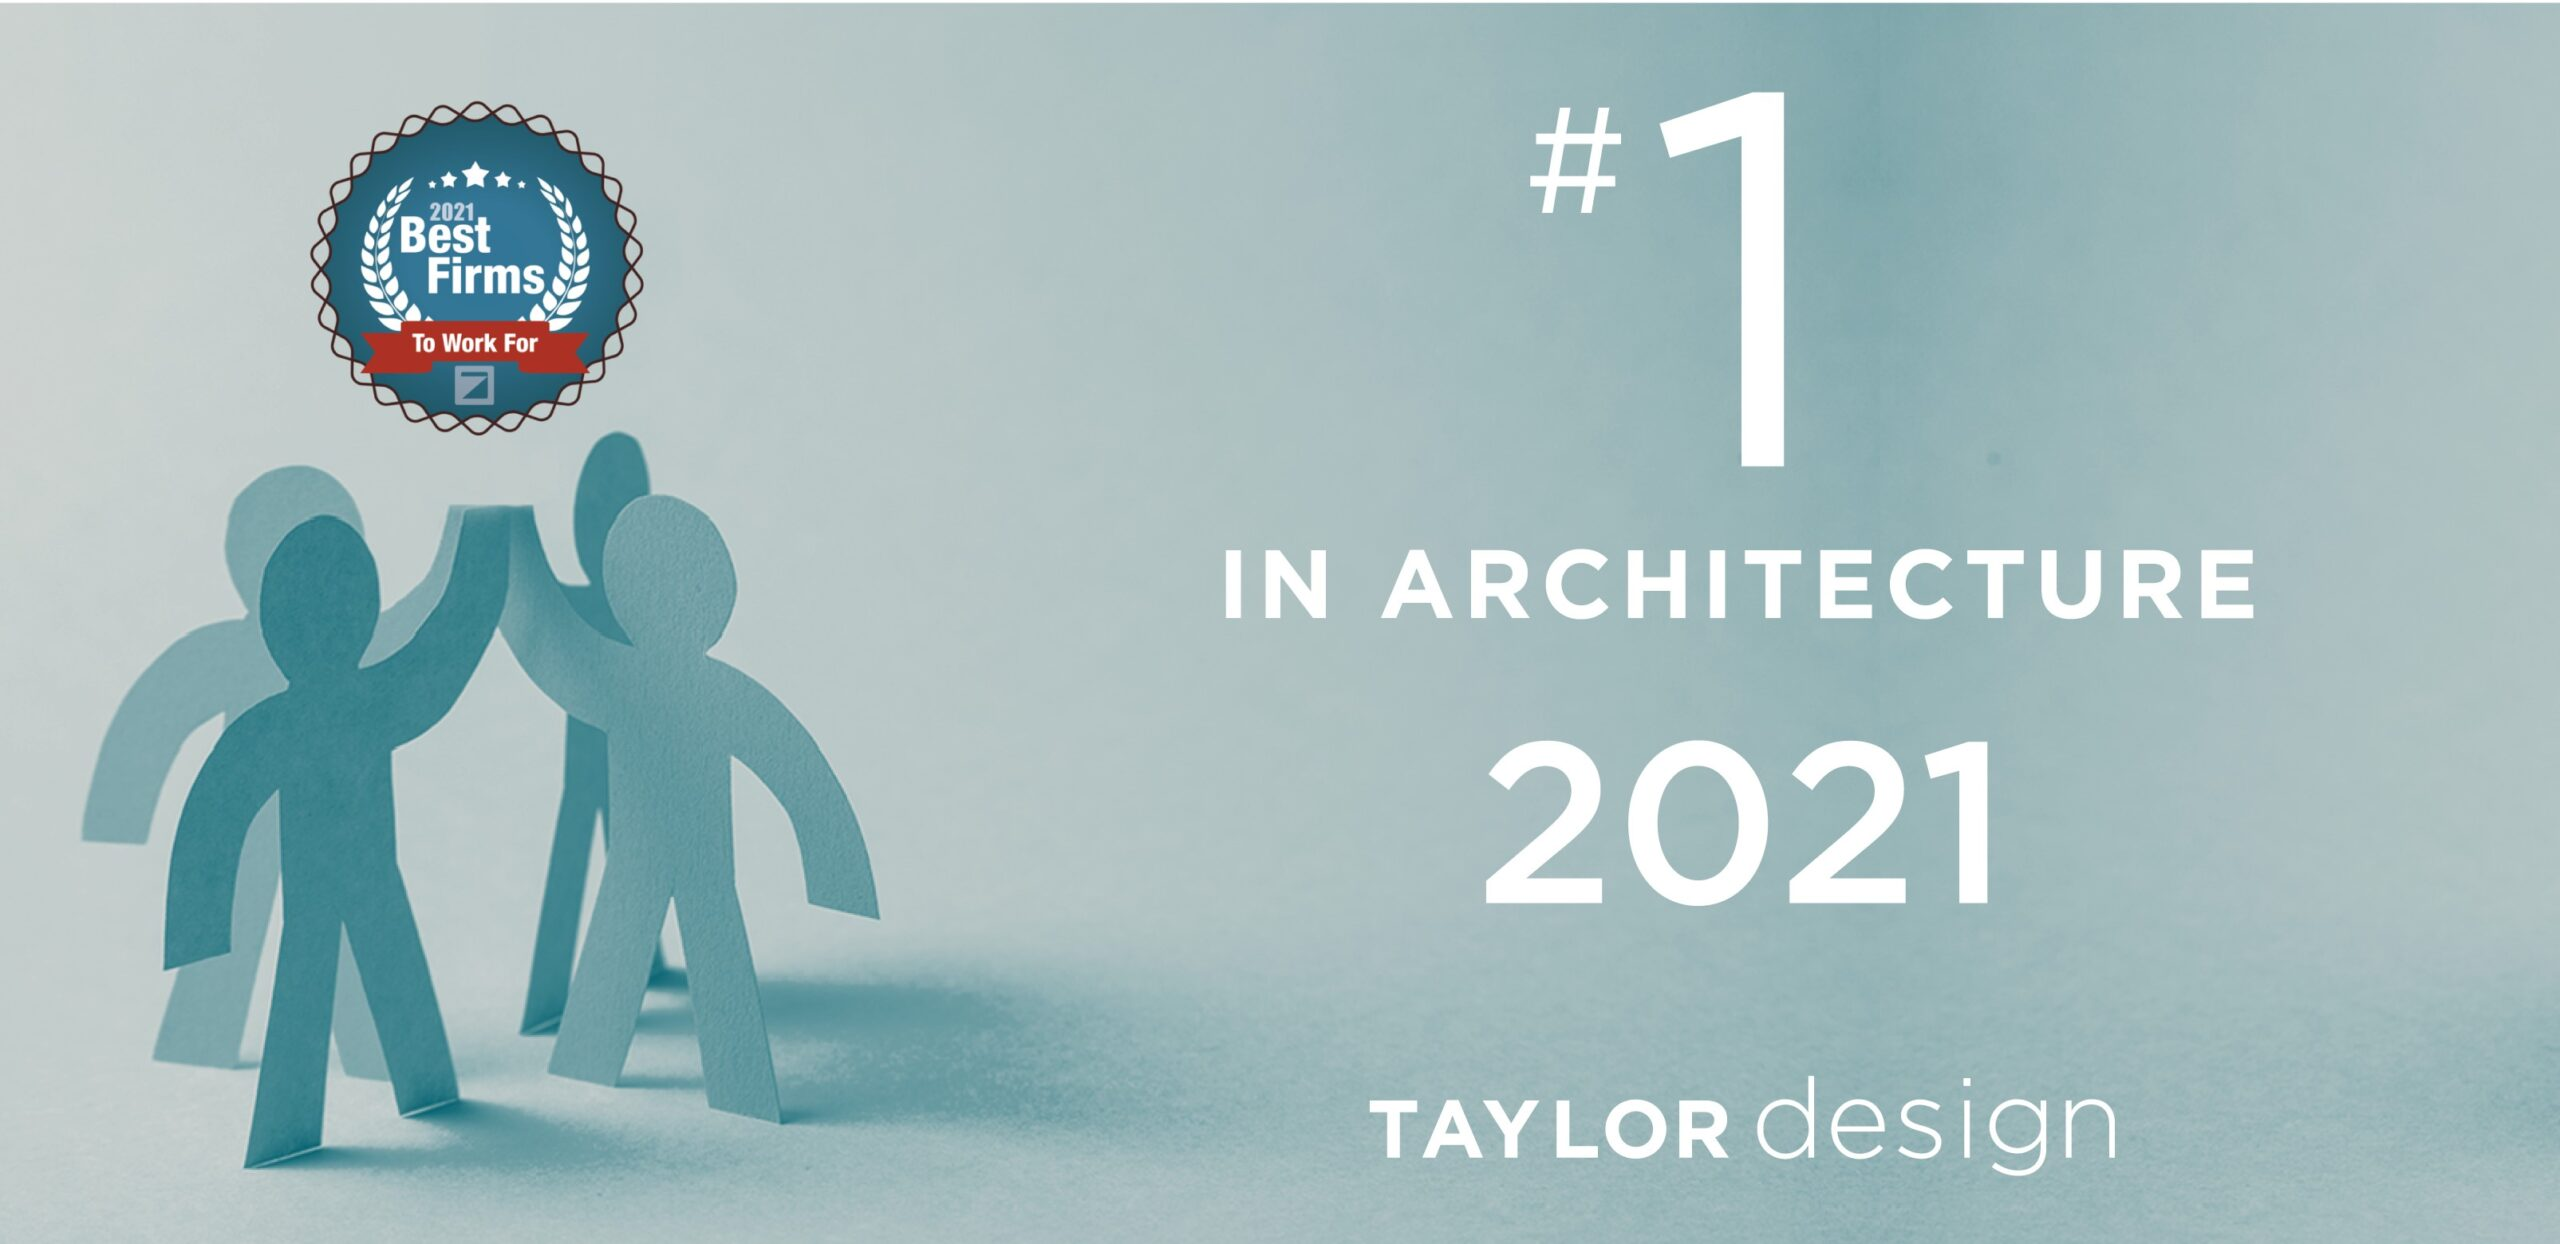 Taylor Design - #1 Architecture Firm 2021